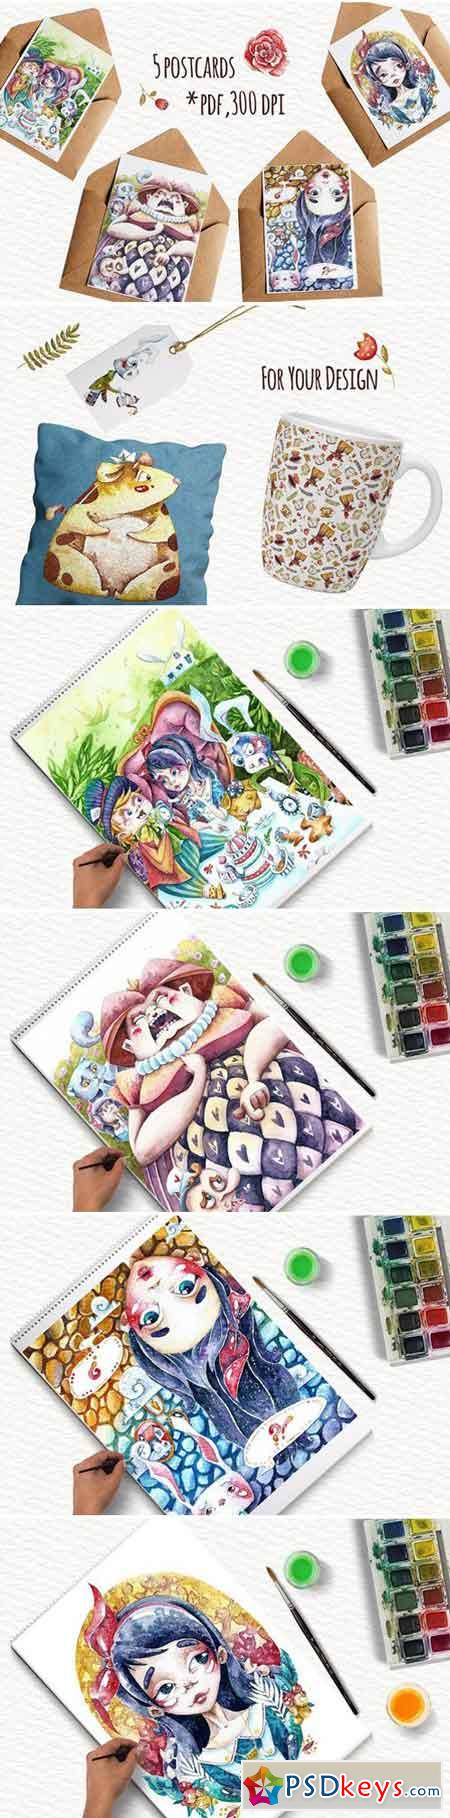 Watercolor Wonderland 1926240